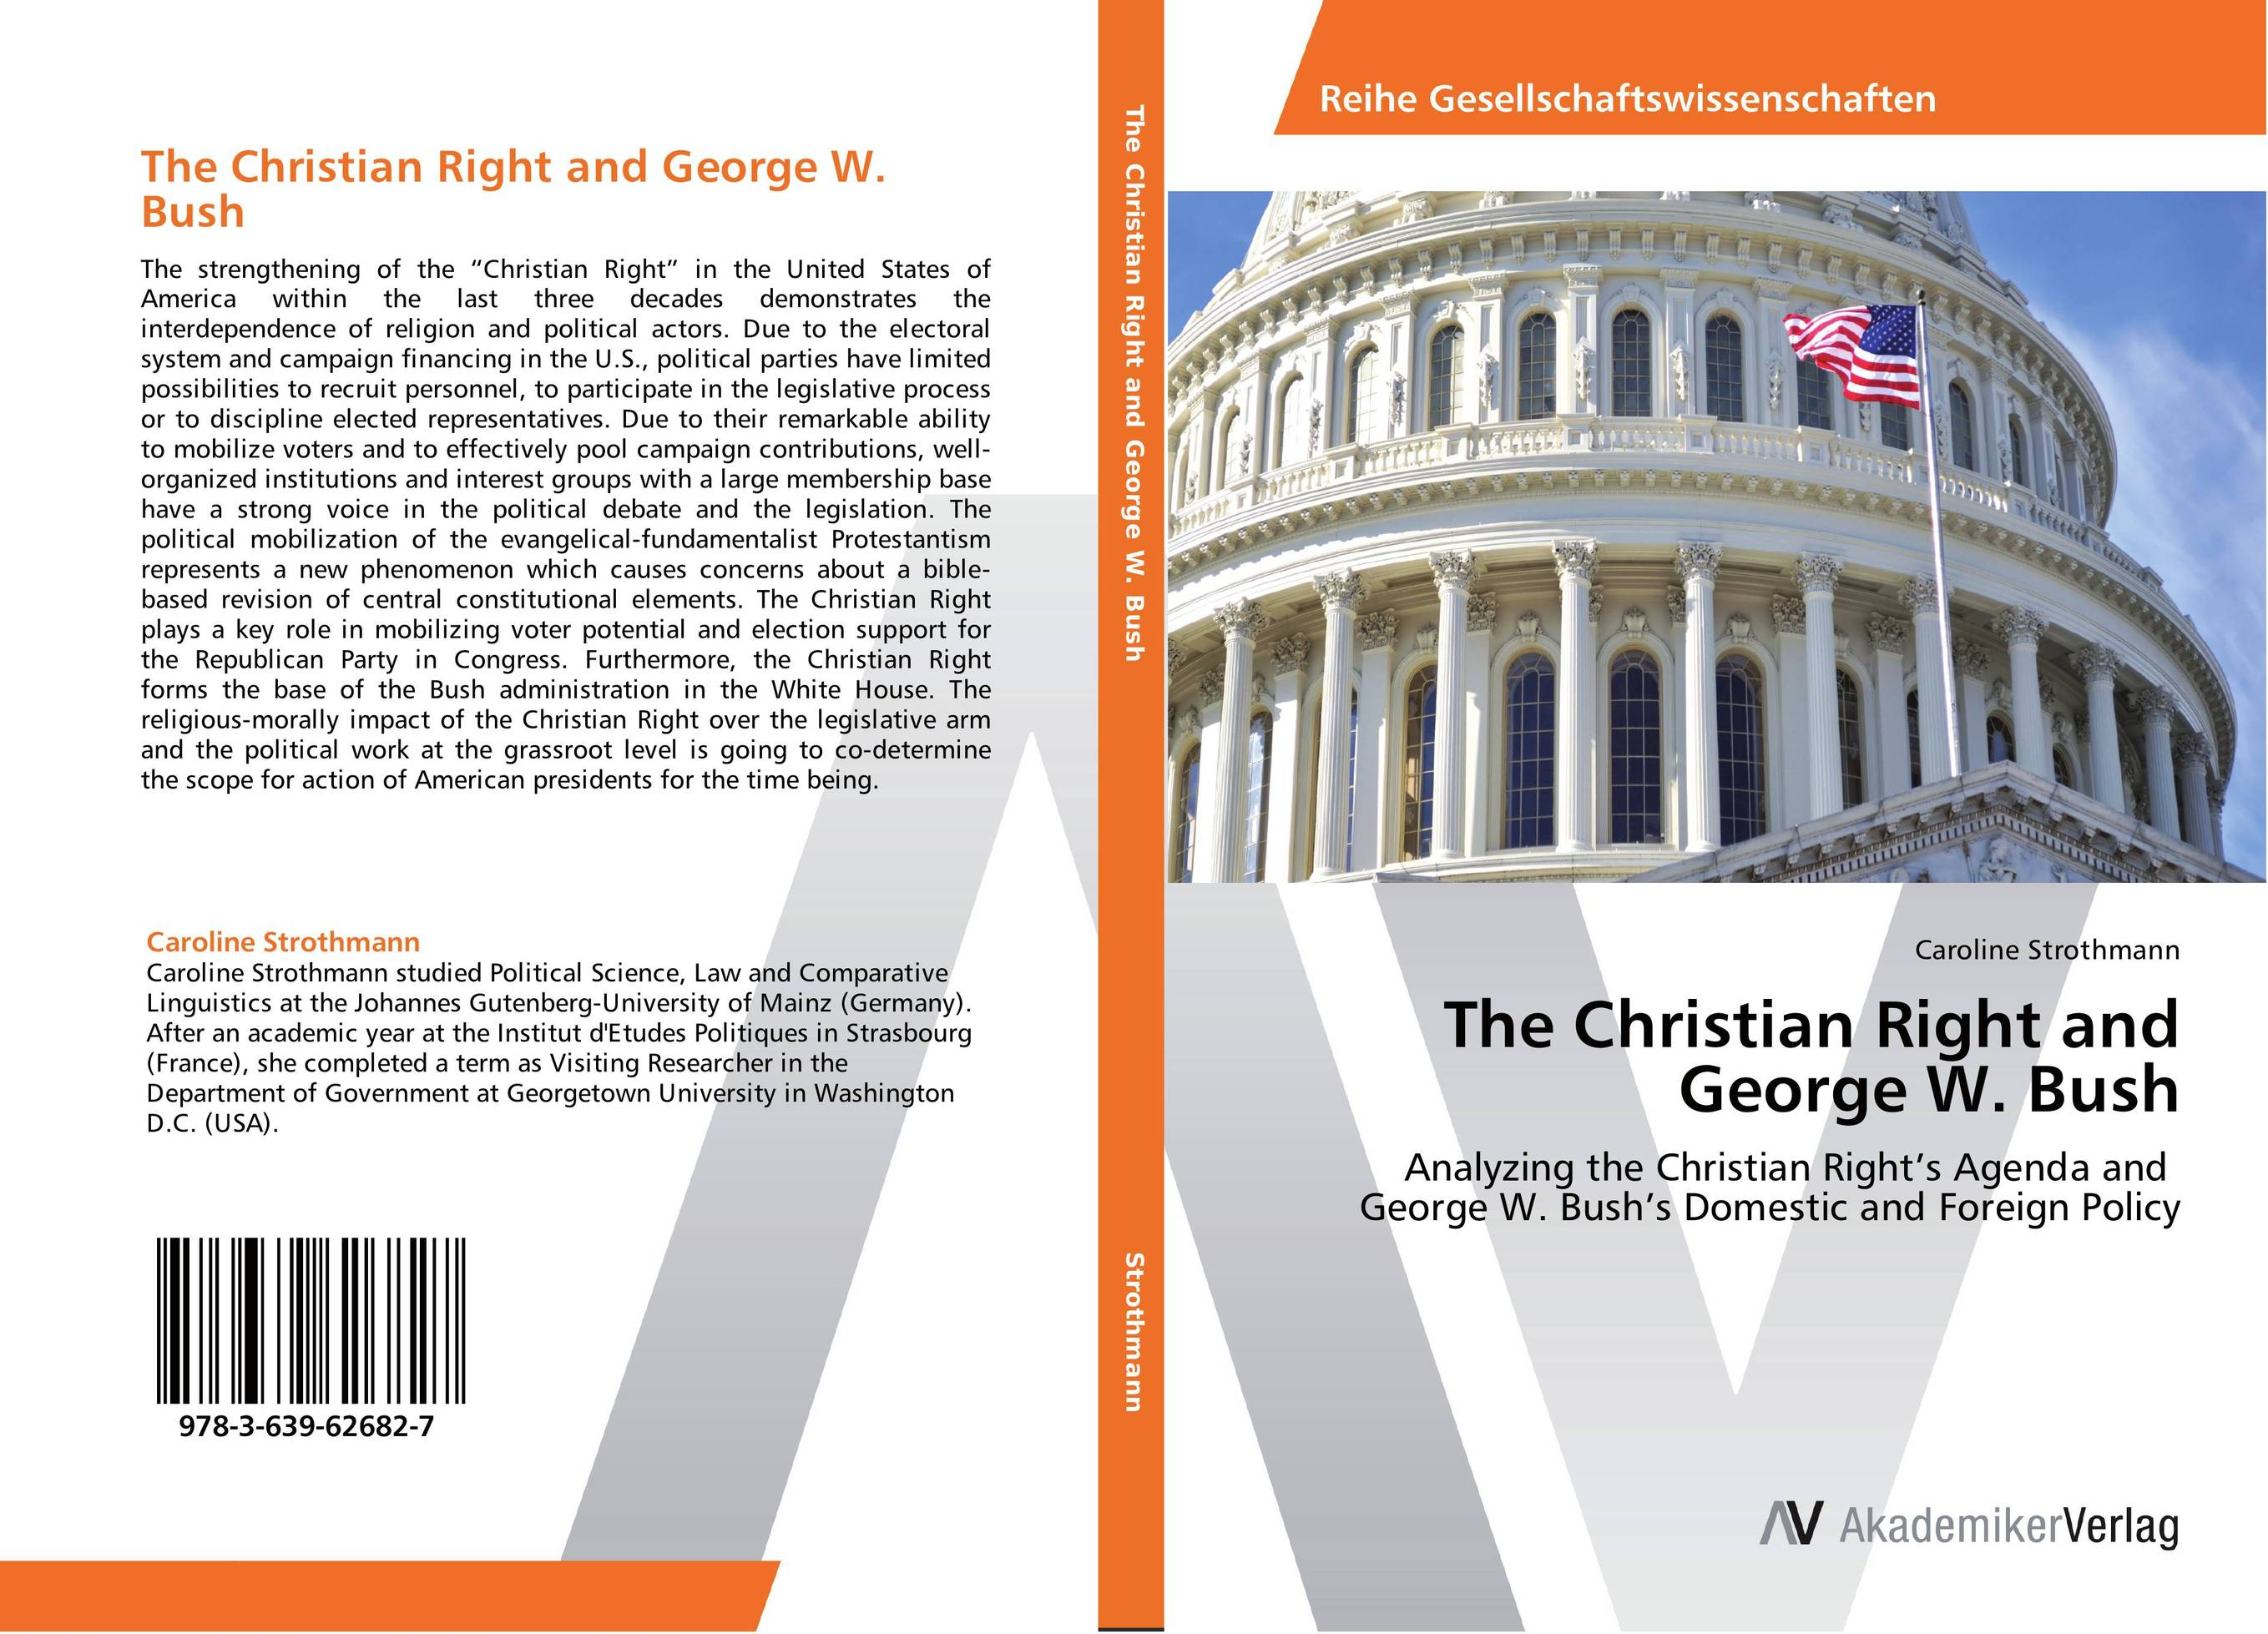 The Christian Right and George W. Bush